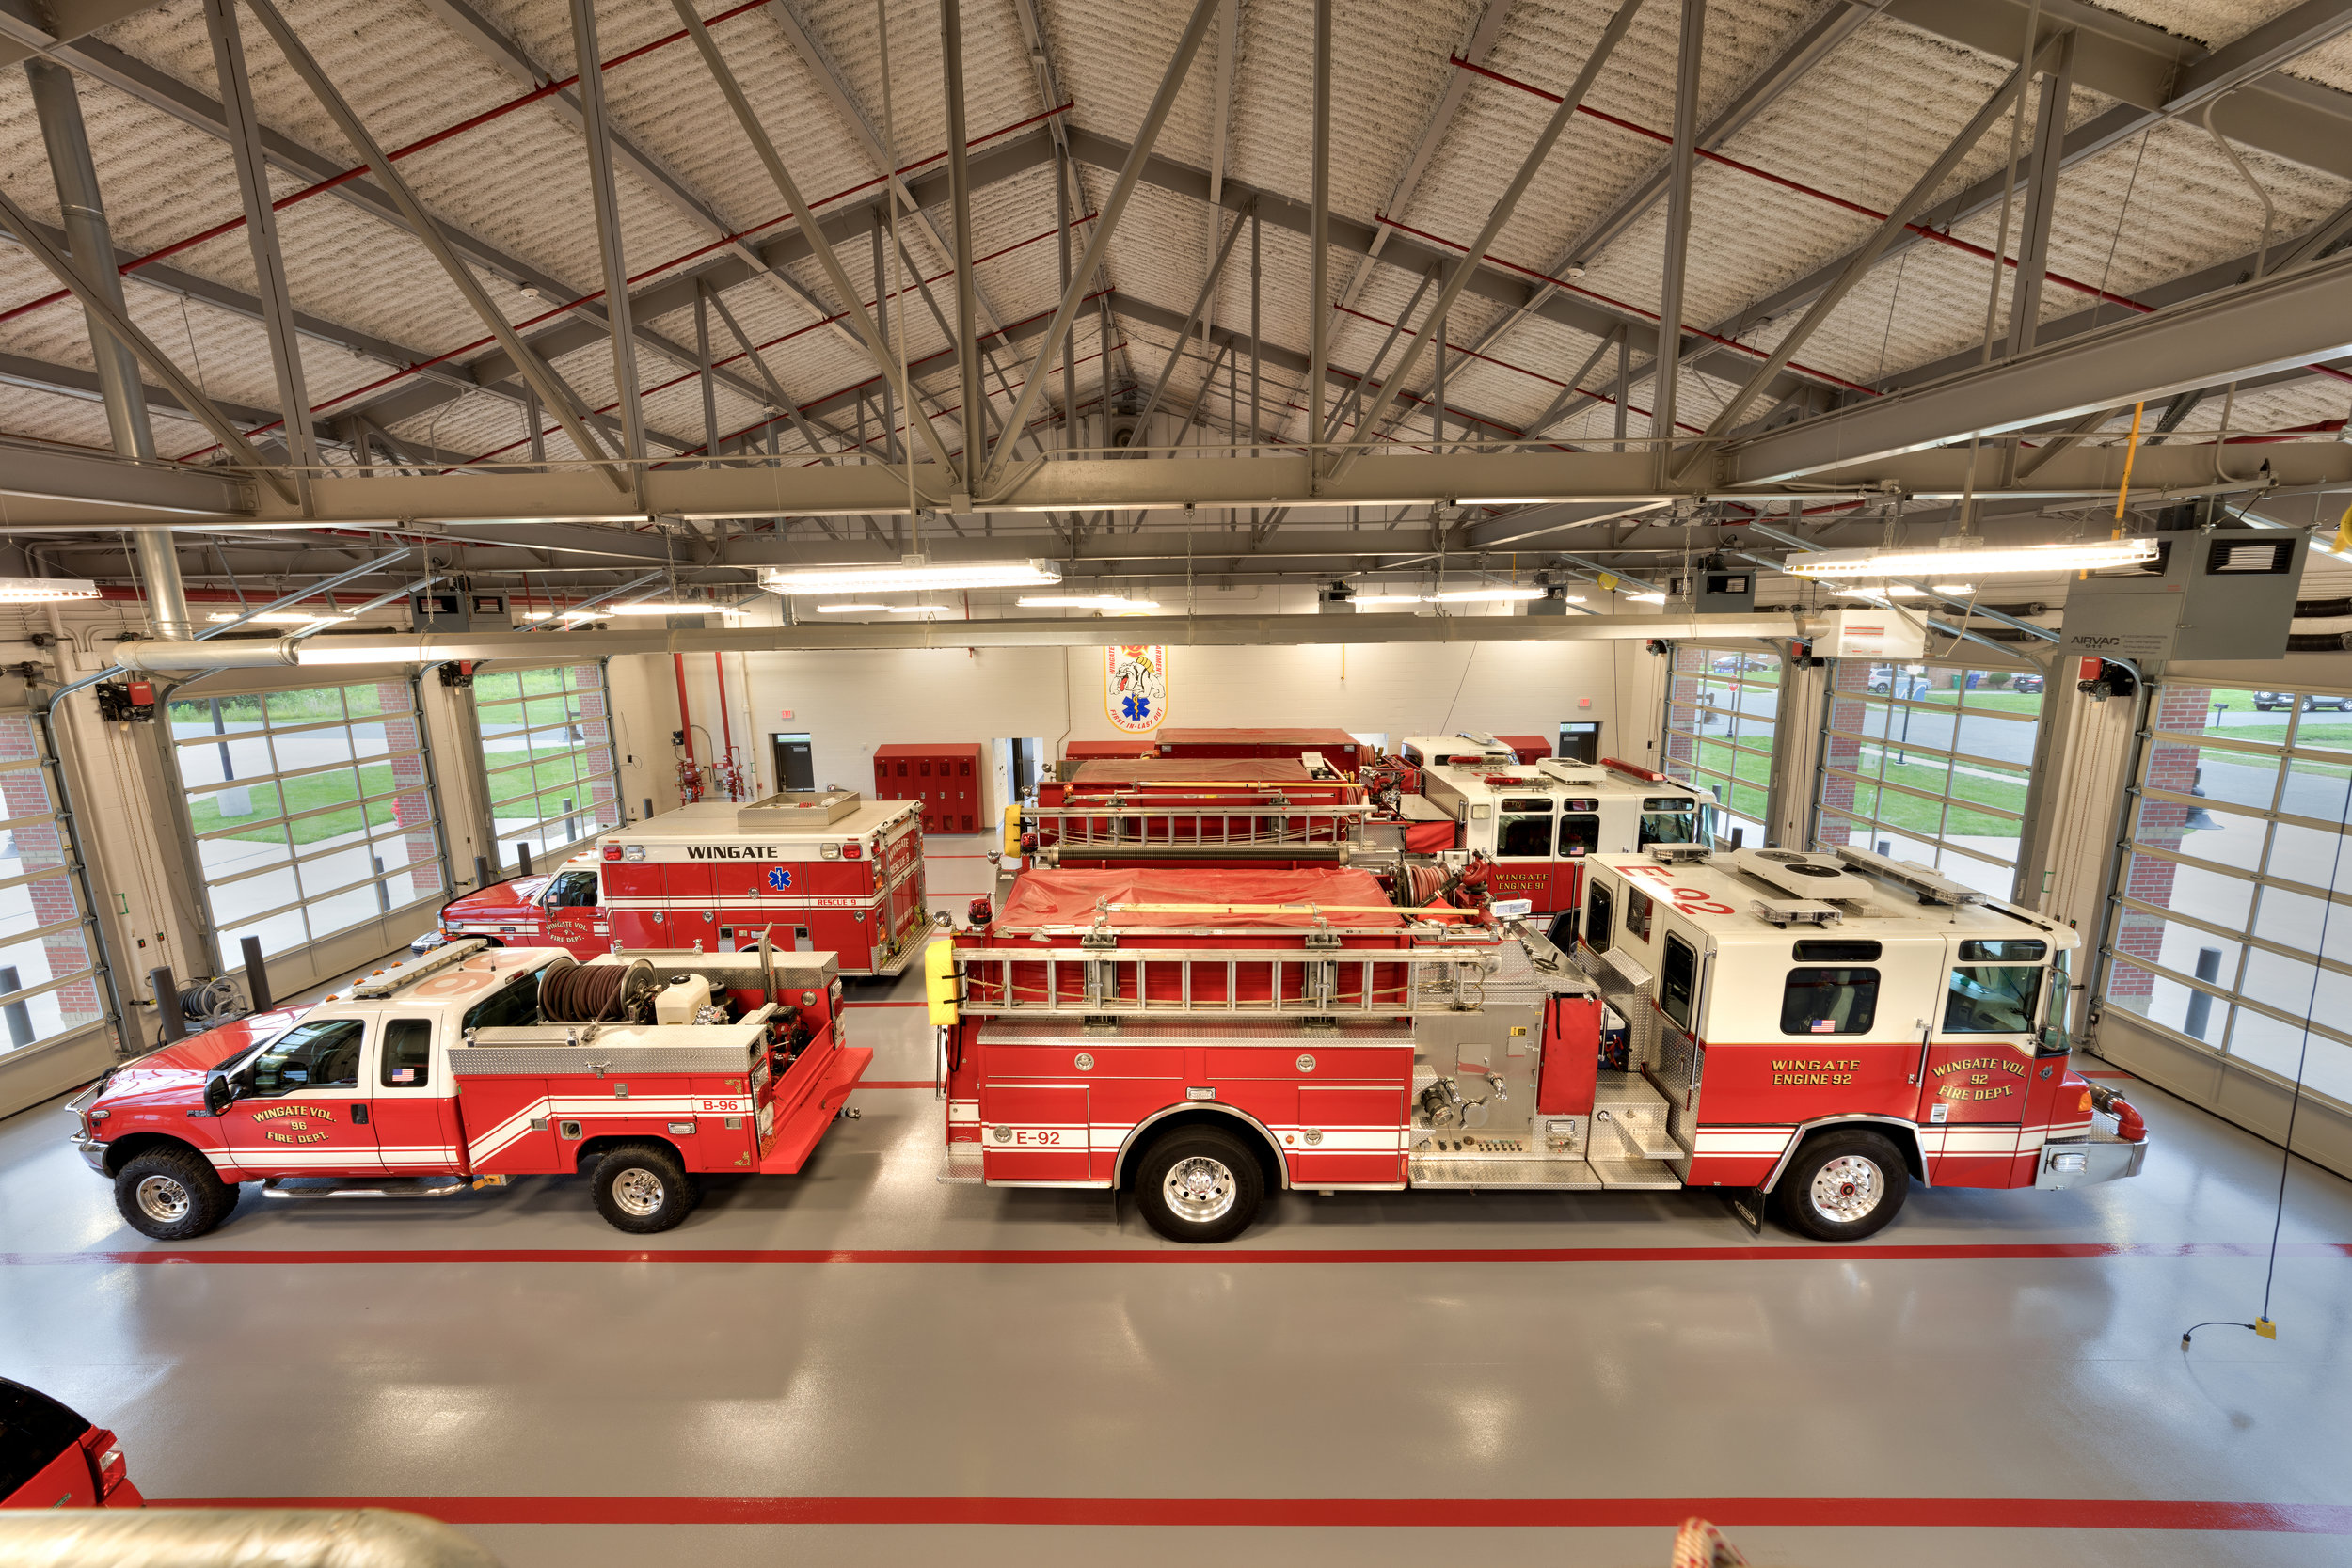 ADW-Civic-Public-Safety-Town-Hall-Fire-Station-Wingate-NC-Interior.jpg